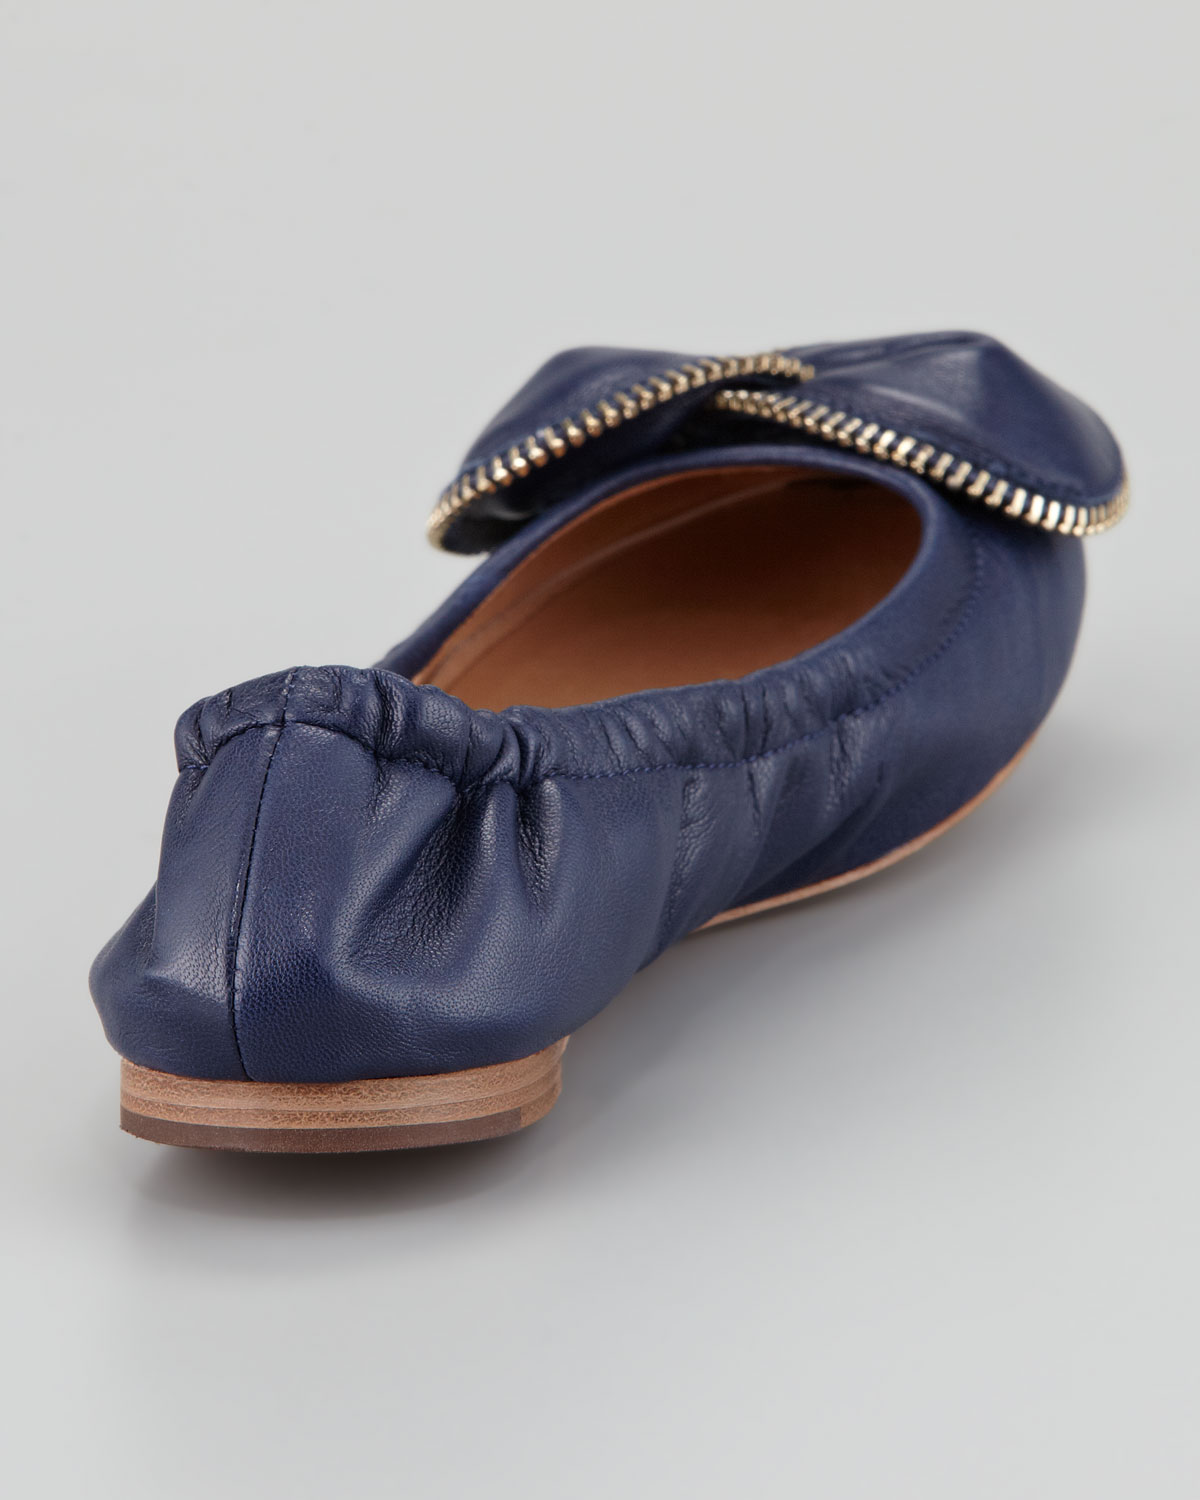 lyst see by chlo zipperbow scrunch ballerina flat navy. Black Bedroom Furniture Sets. Home Design Ideas